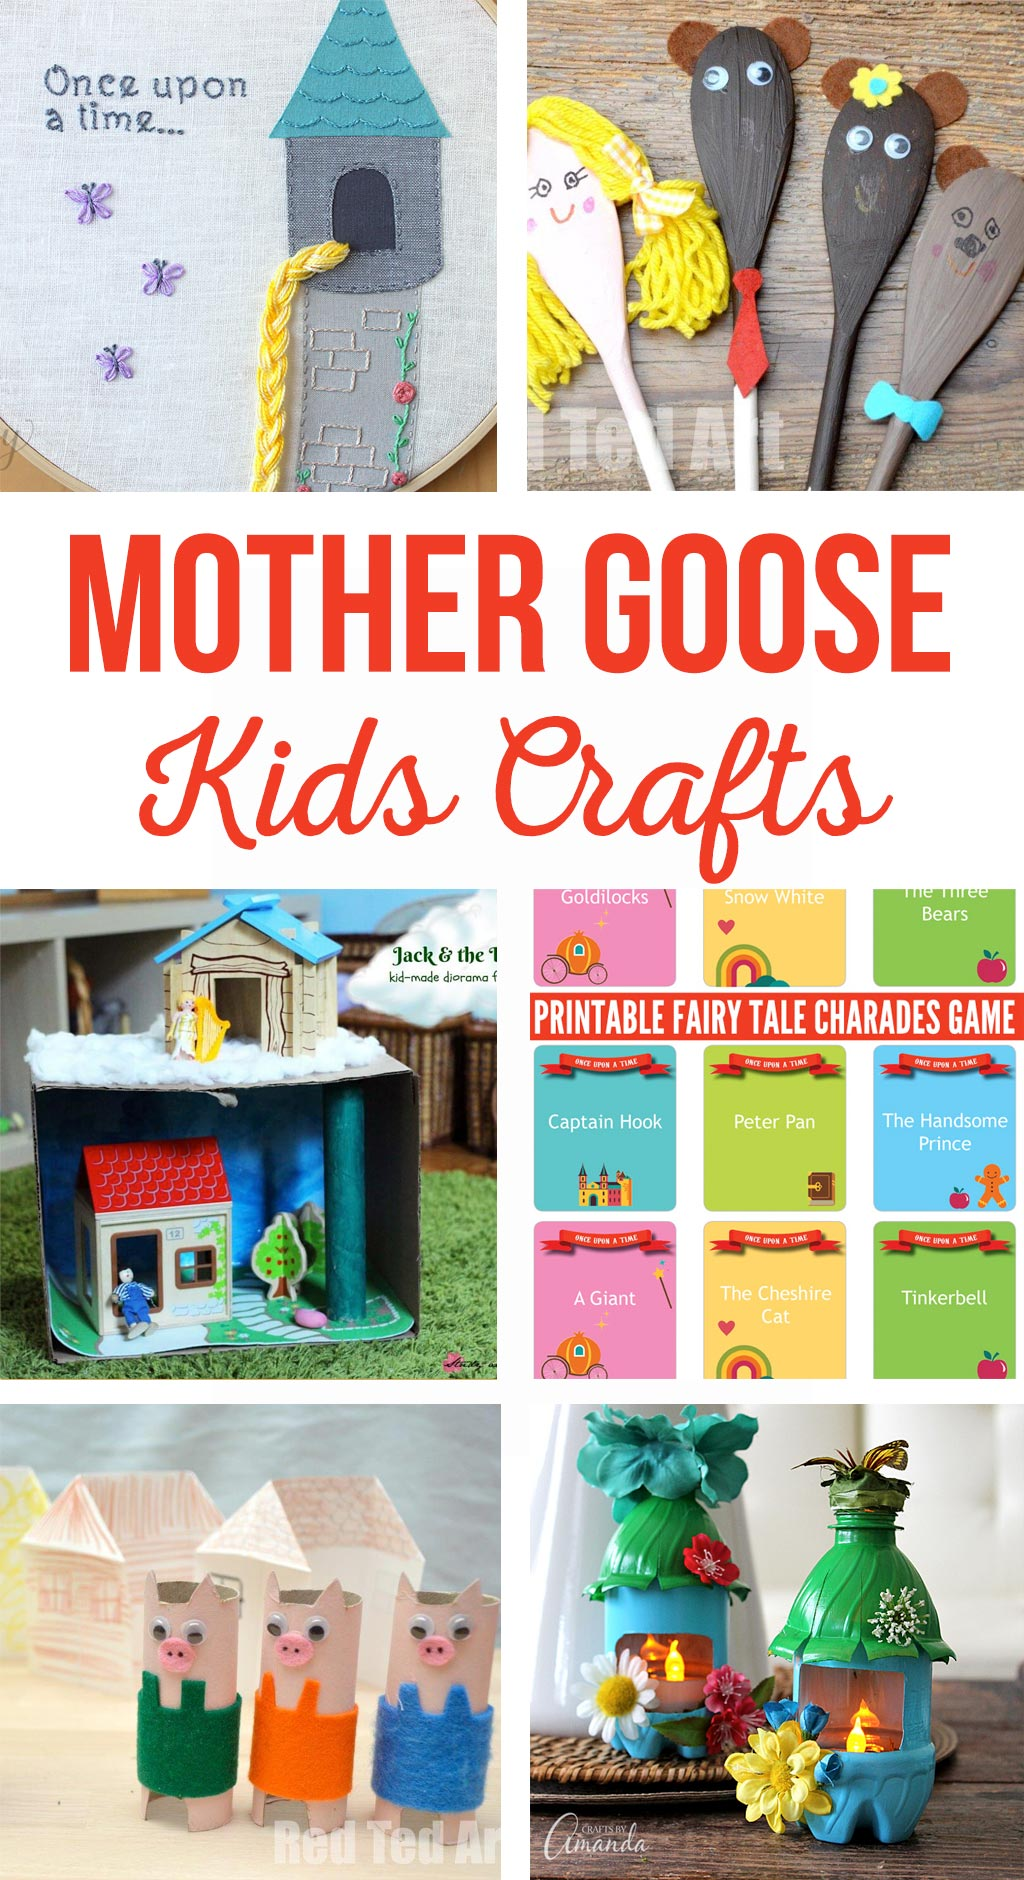 Mother Goose Kids Crafts | These kids crafts and activities go along with Mother Goose Nursery Rhymes and Fairy Tales. Simple activities for school or home. #mothergoose #mothergoosecrafts #kidscrafts #kidsactivities #fairytalecrafts